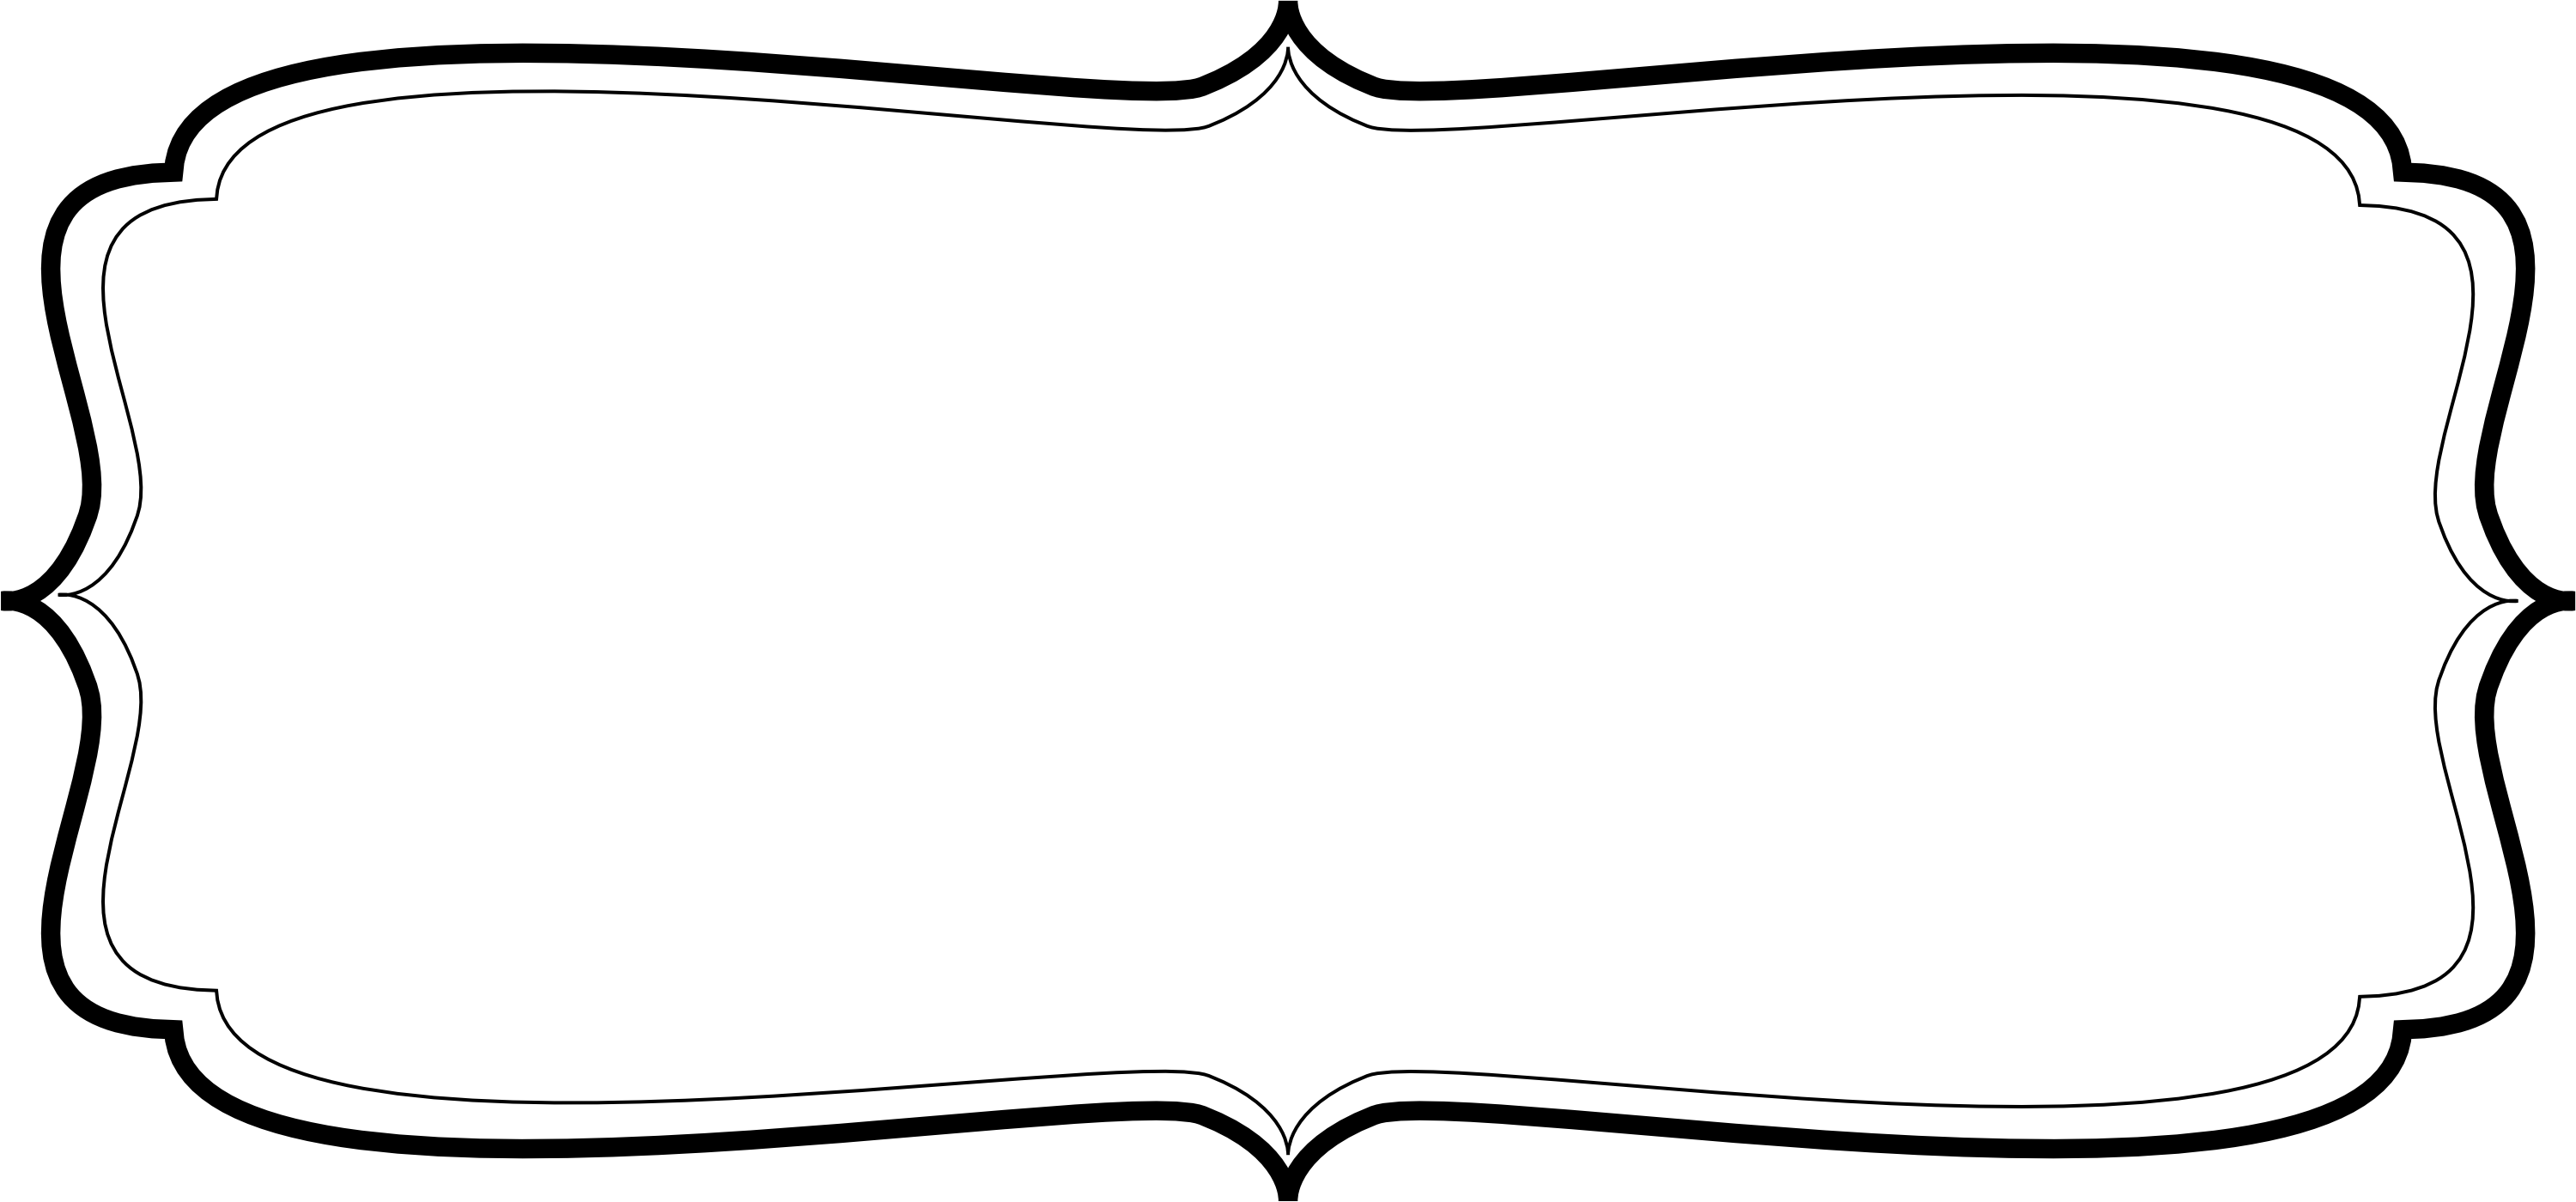 label frames png - photo #14